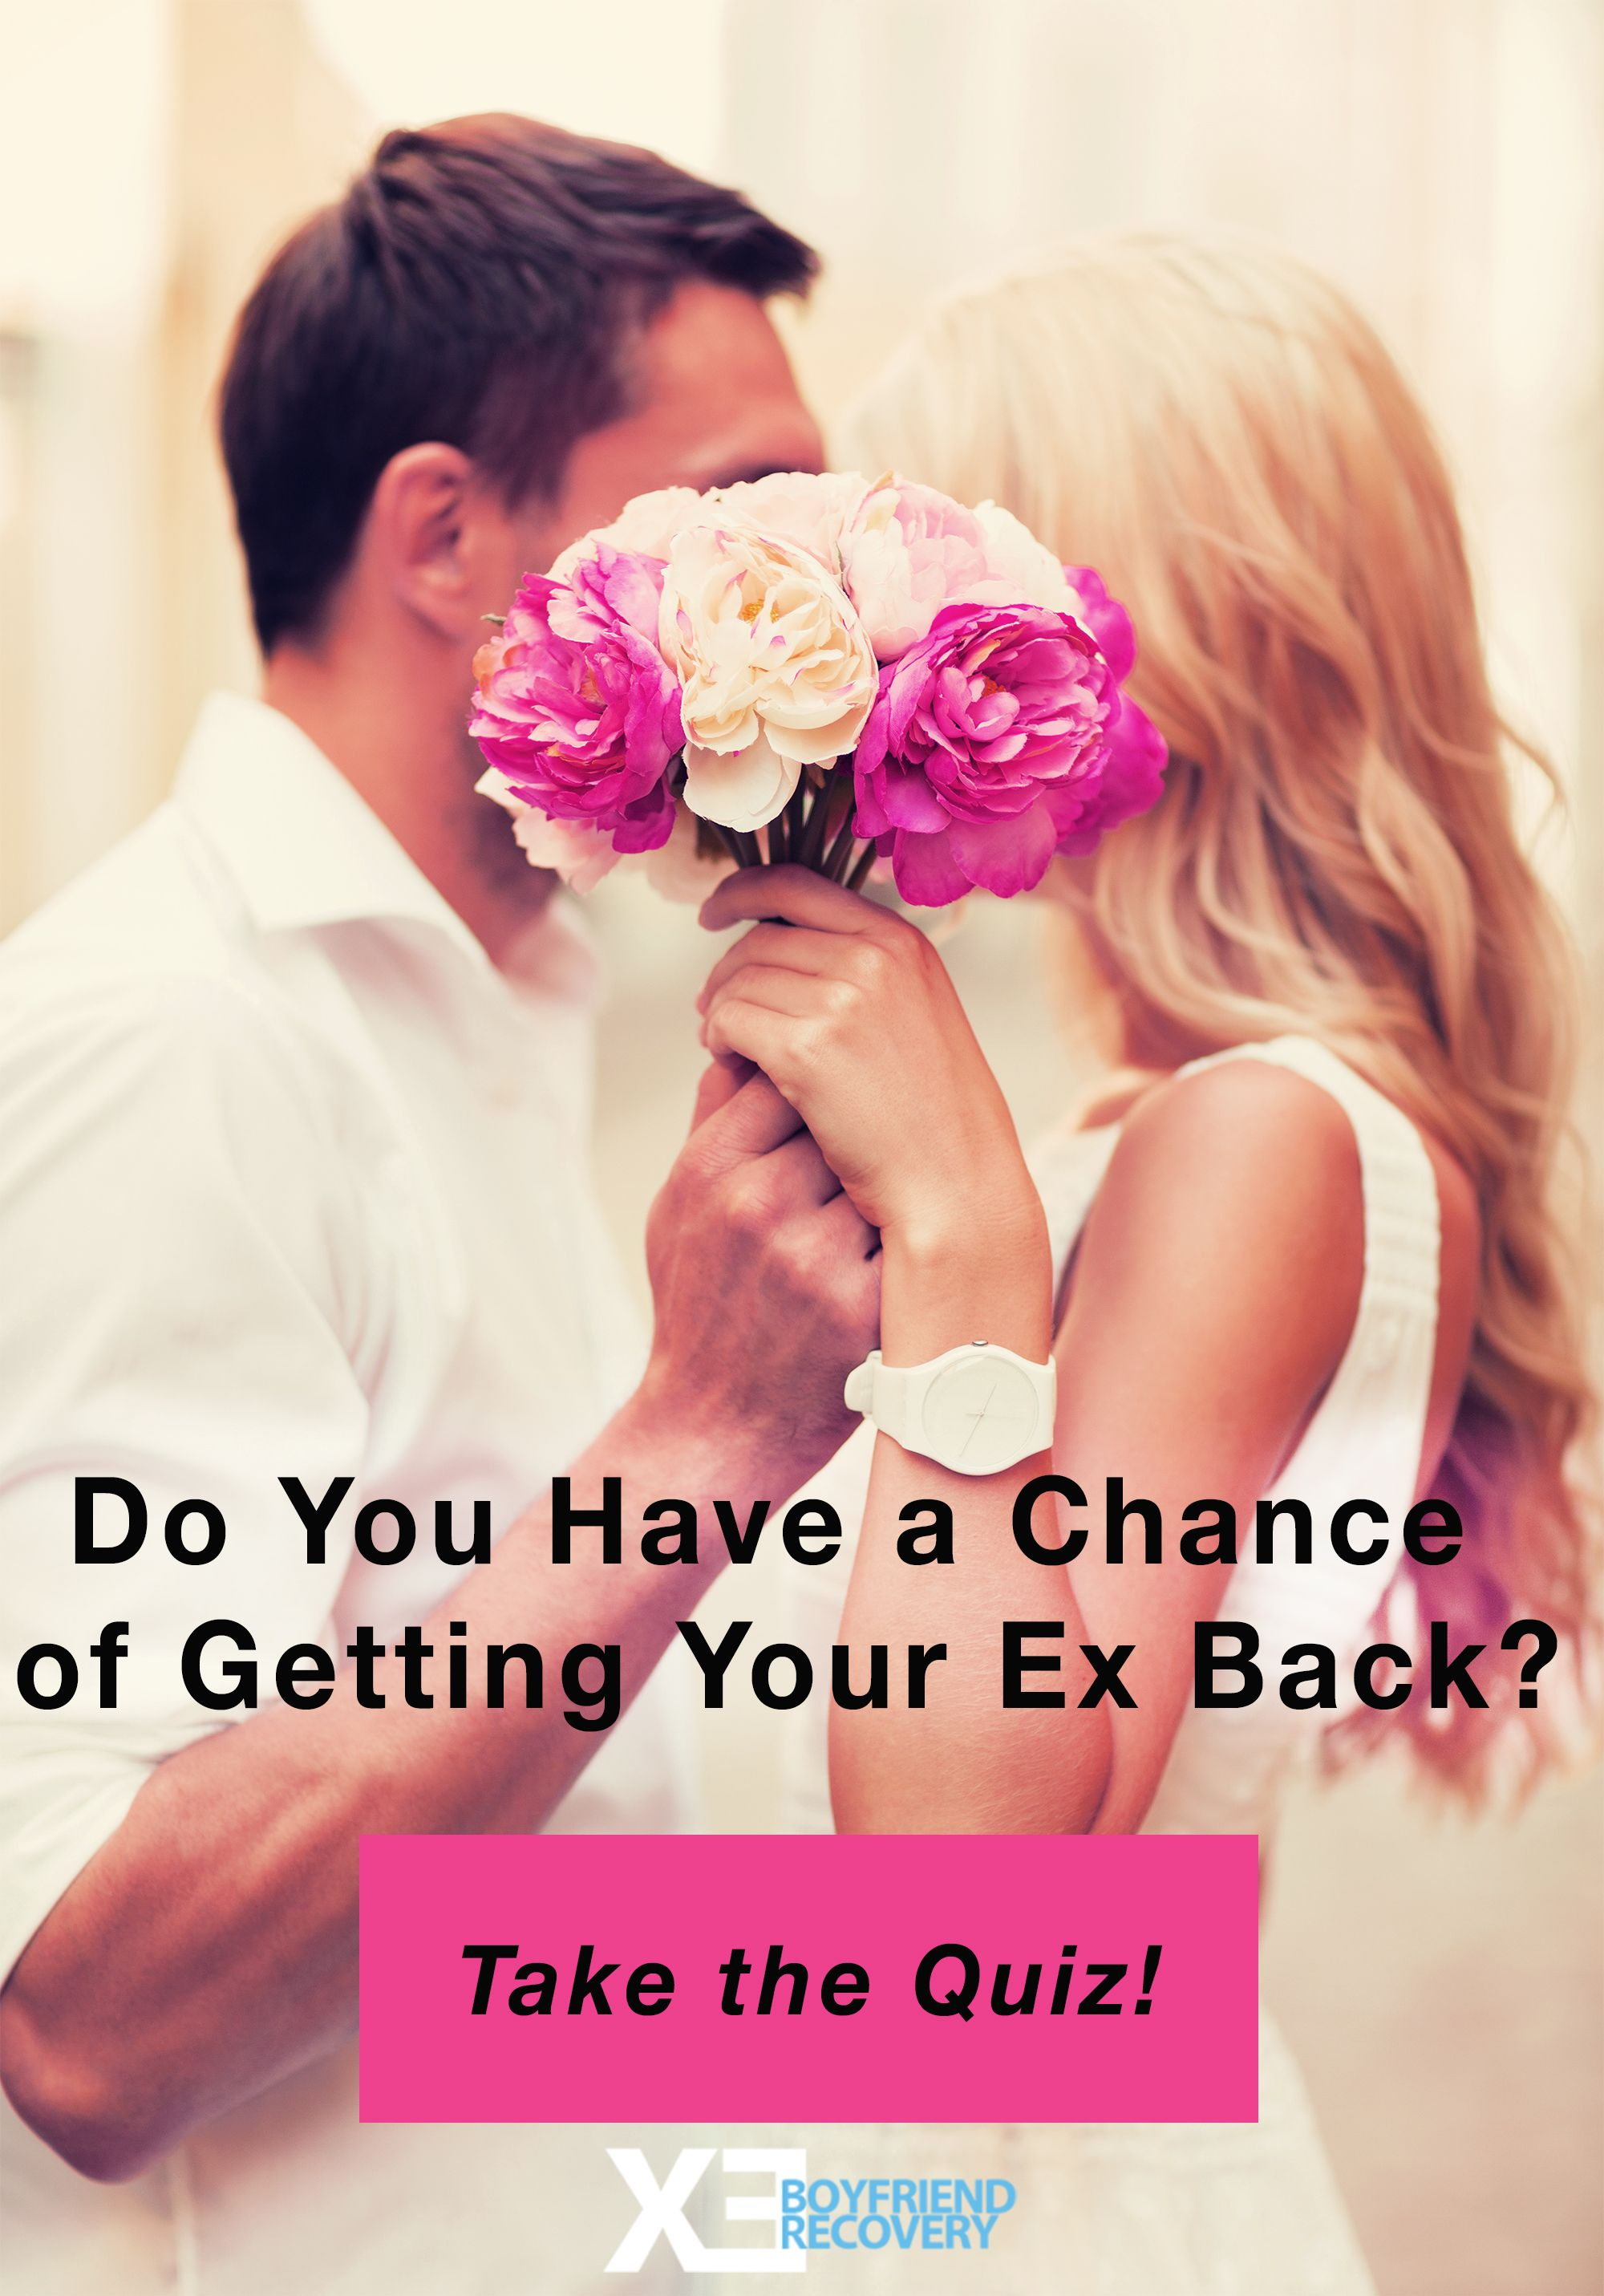 Can you get your ex boyfriend back? A 5-minute quiz will